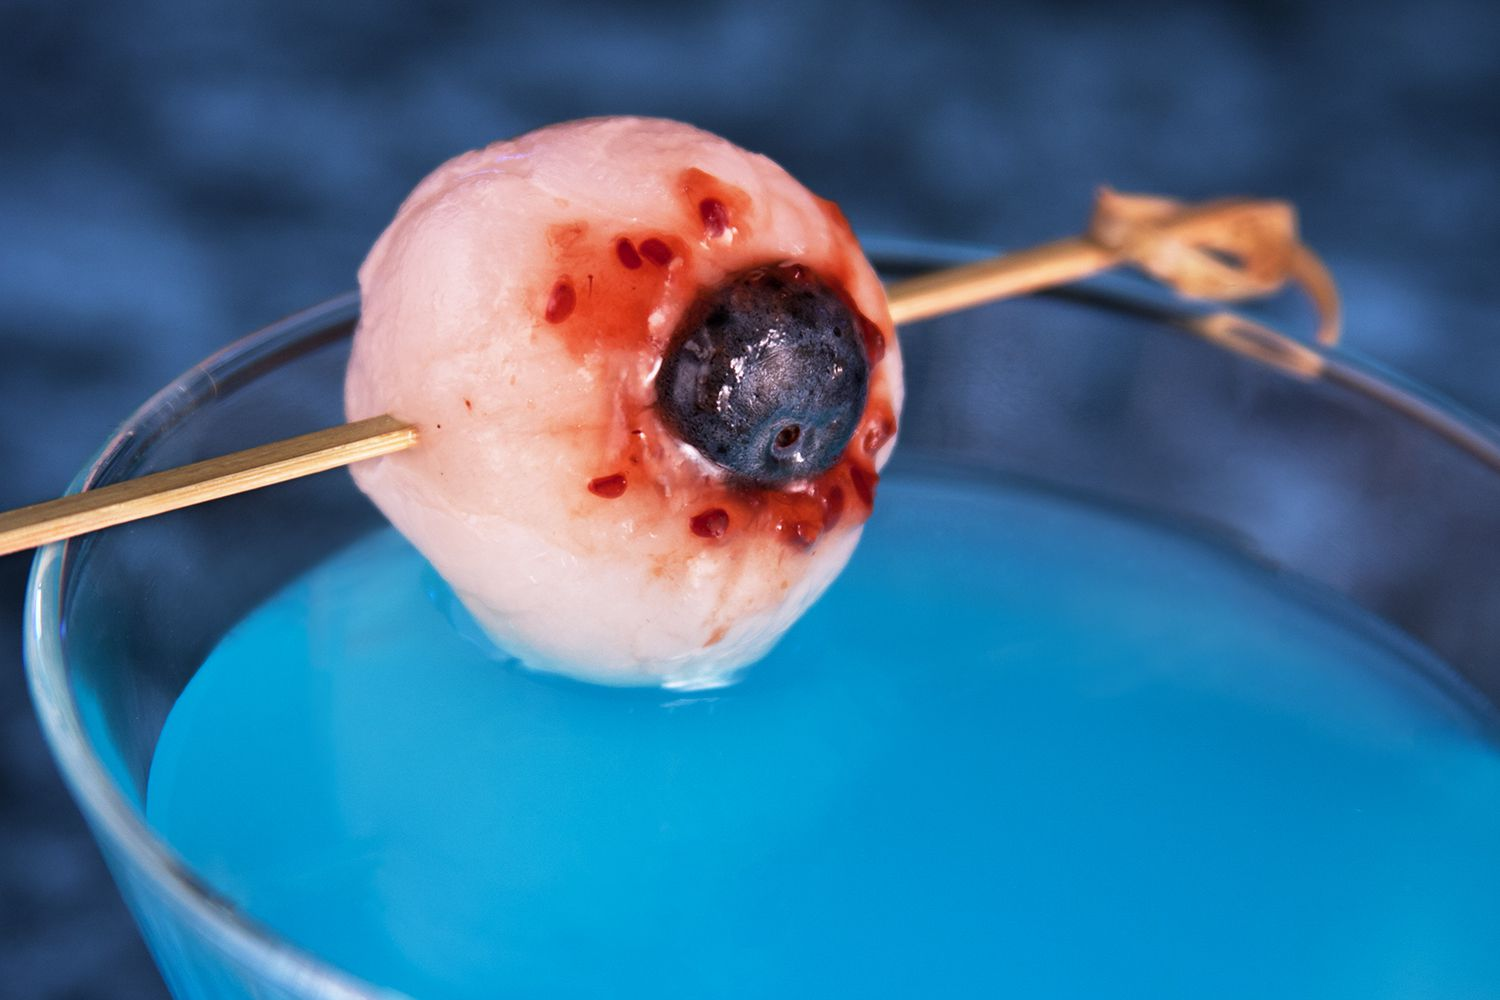 Lychee Eyeball Garnish for Halloween Cocktails